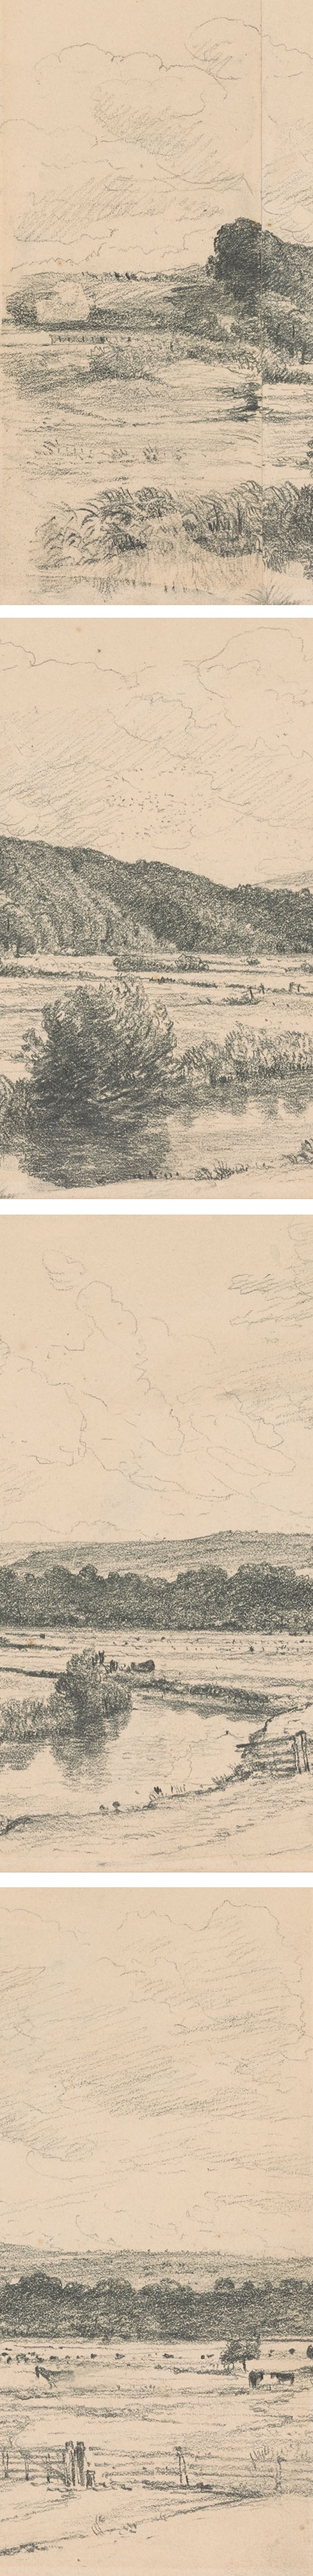 View of Cat Hanger, John Constable landscape pencil drawing